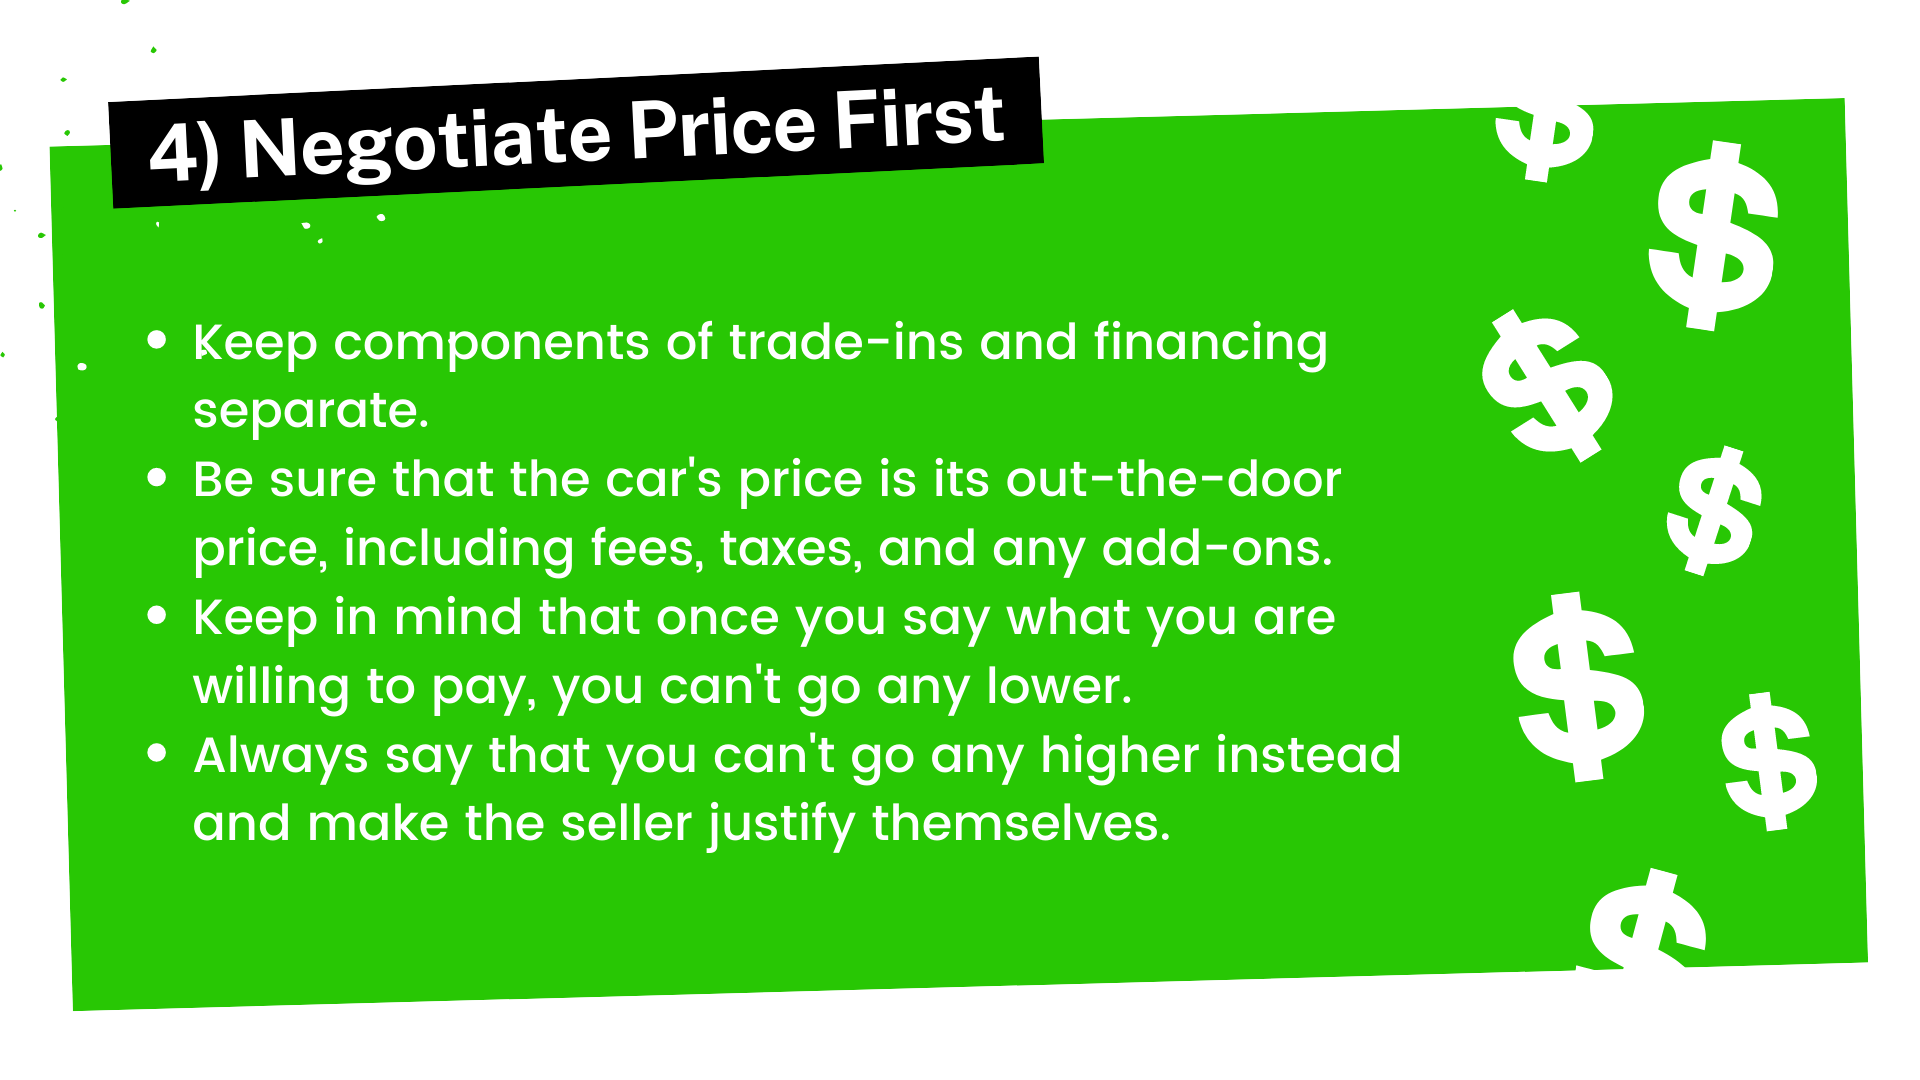 Keep components of trade-ins and financing separate. Be sure that the car's price is its out-the-door price, including fees, taxes, and any add-ons. Keep in mind that once you say what you are willing to pay, you can't go any lower.  Always say that you can't go any higher instead and make the seller justify themselves.